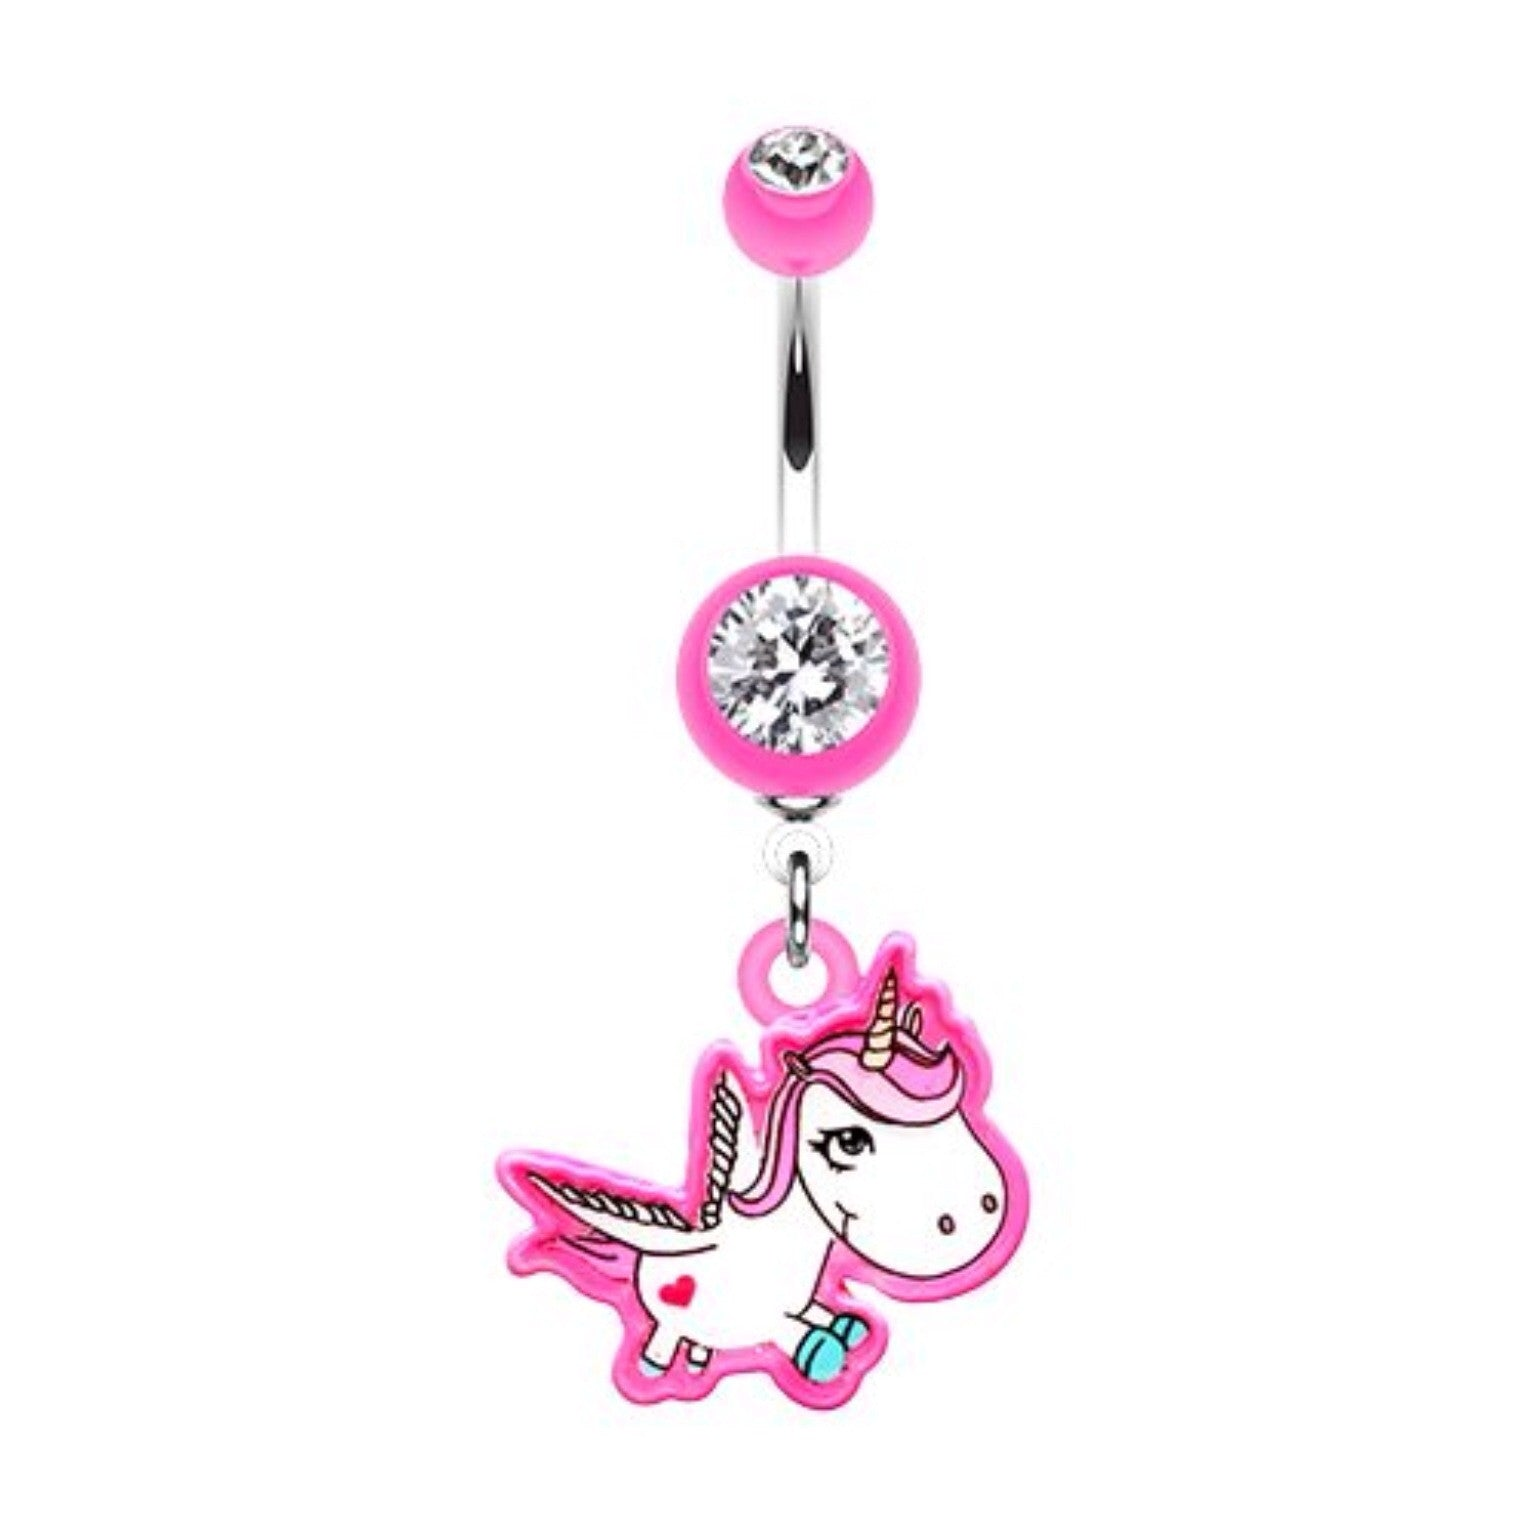 com umbigo cross button bodypiercing body fashion jewelry dhgate rings belly from dangle ombligo piercing navel product